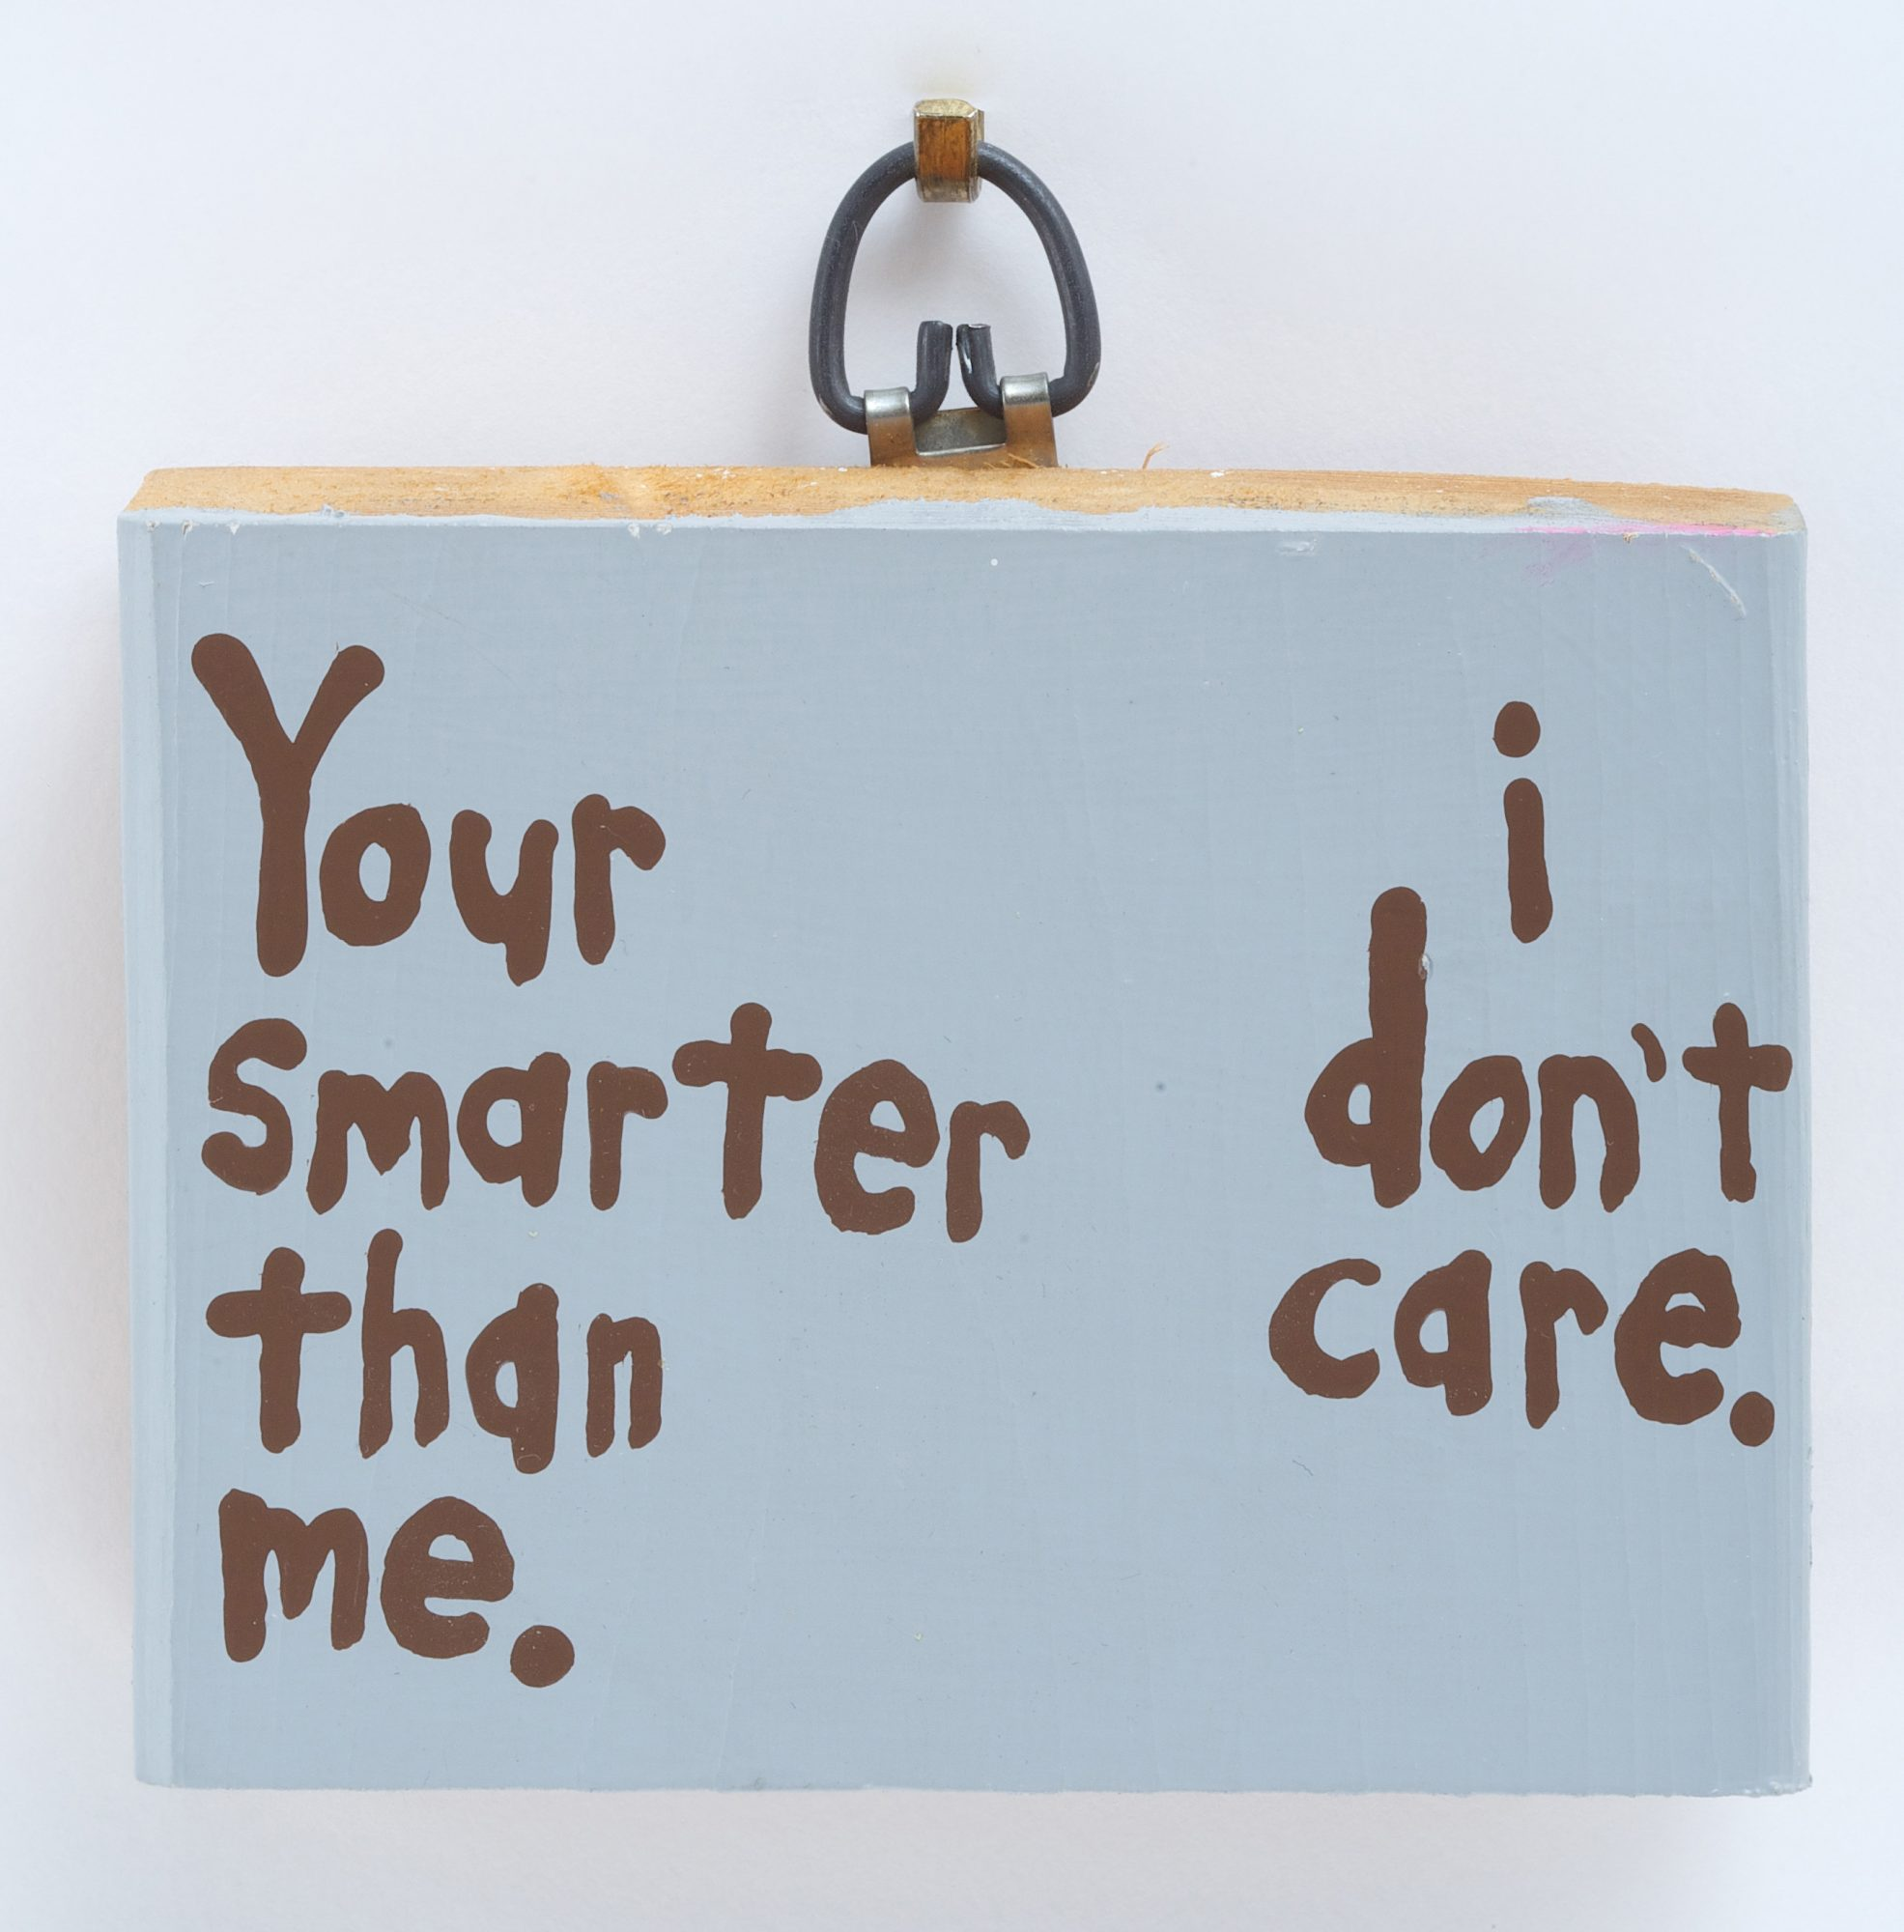 Cary S. Leibowitz (American, b. 1963) Your smarter than me. i don't care